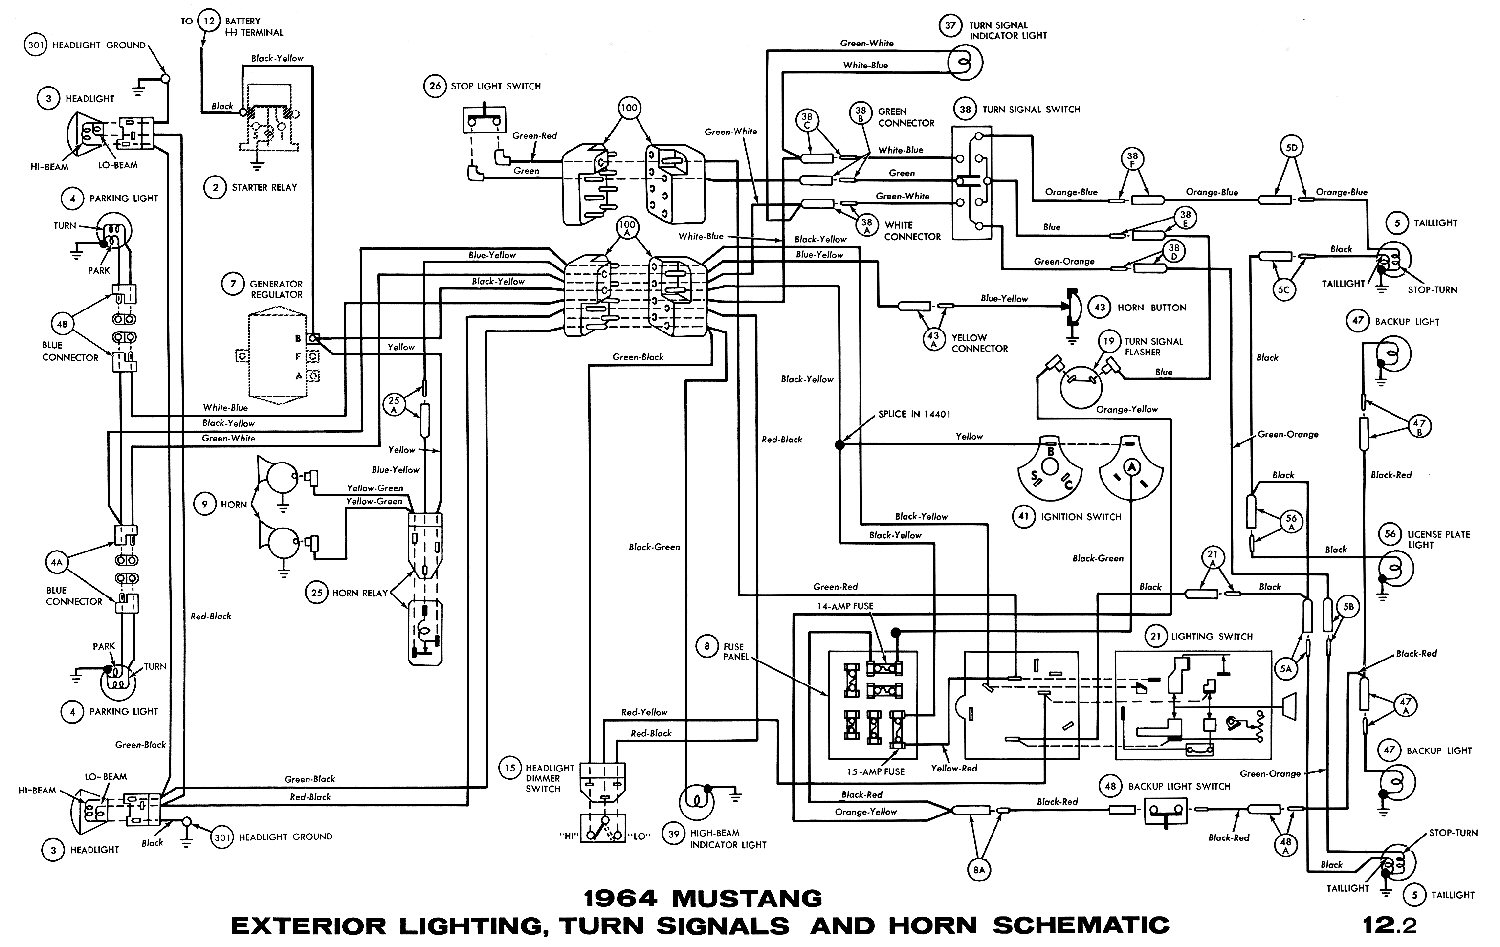 1964i 1964 mustang wiring diagrams average joe restoration 1966 mustang wiring diagrams at nearapp.co